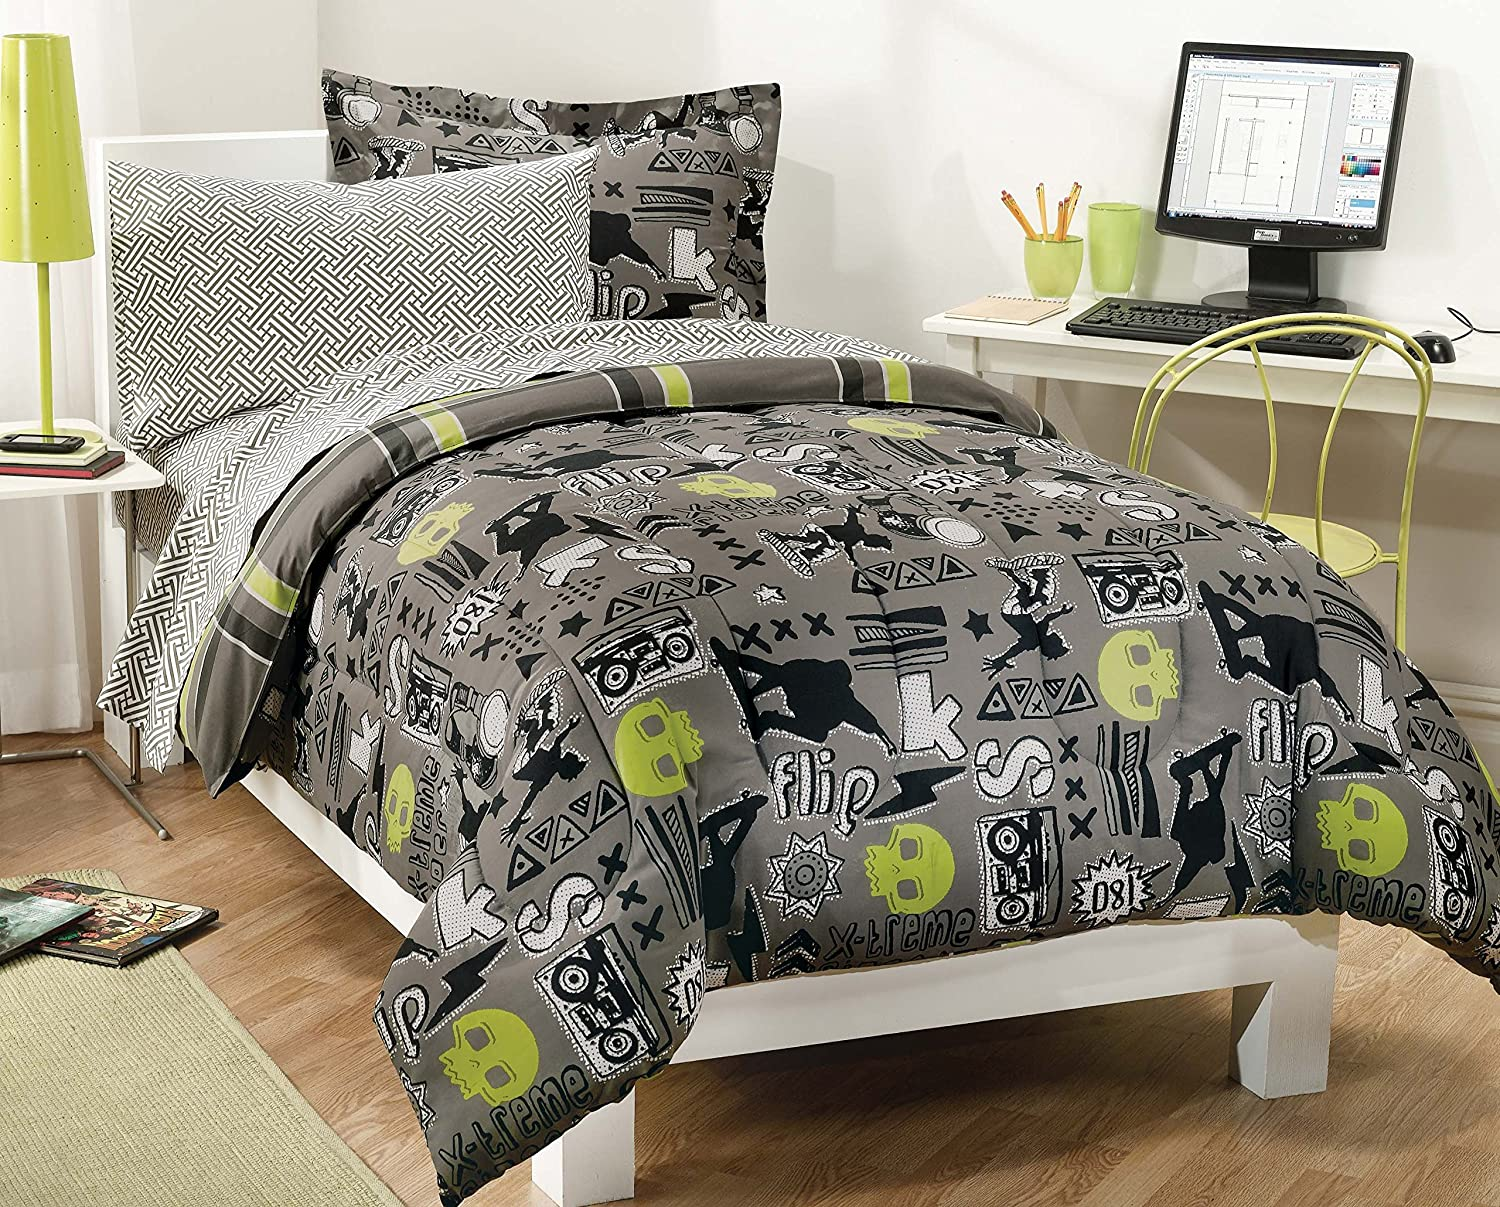 Amazoncom My Room Extreme Skateboarding Boys Comforter Set With - Boys sports bedding sets twin